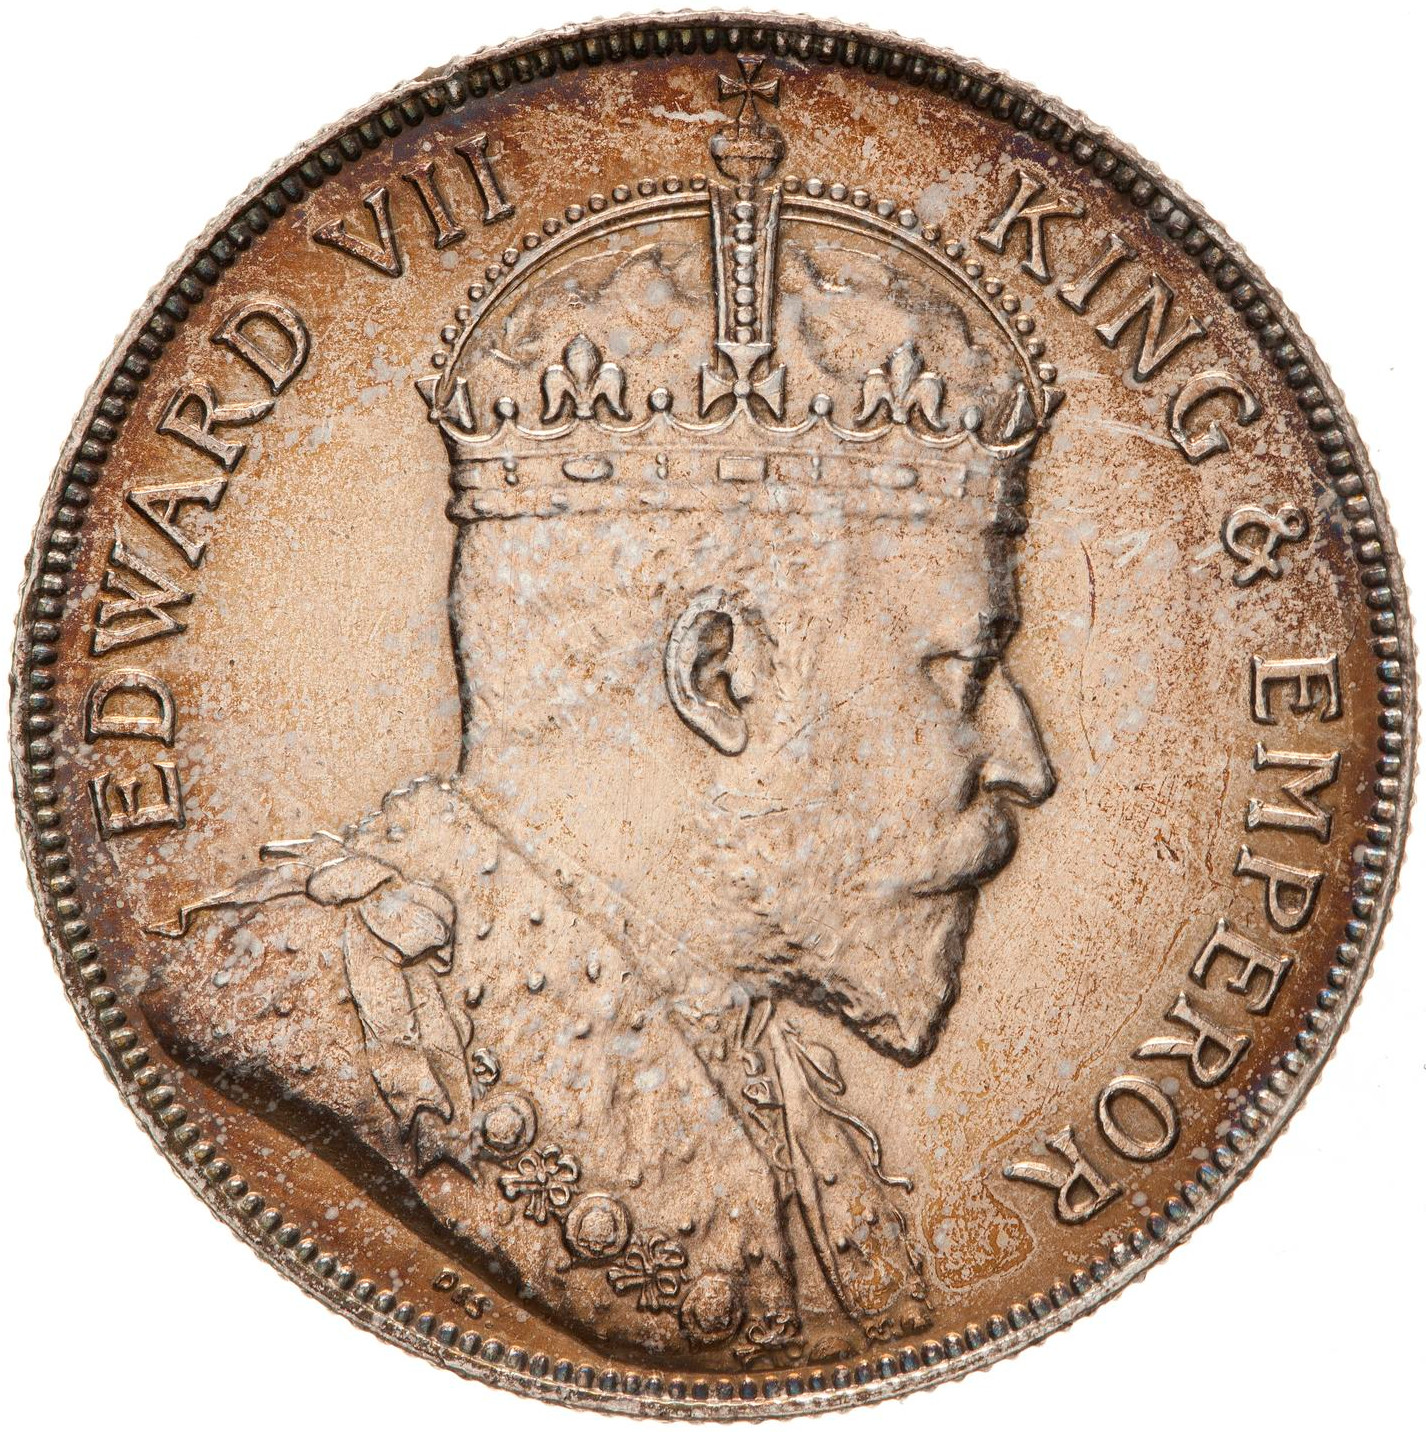 Fifty Cents (Silver): Photo Coin - 50 Cents, British Honduras (Belize), 1906